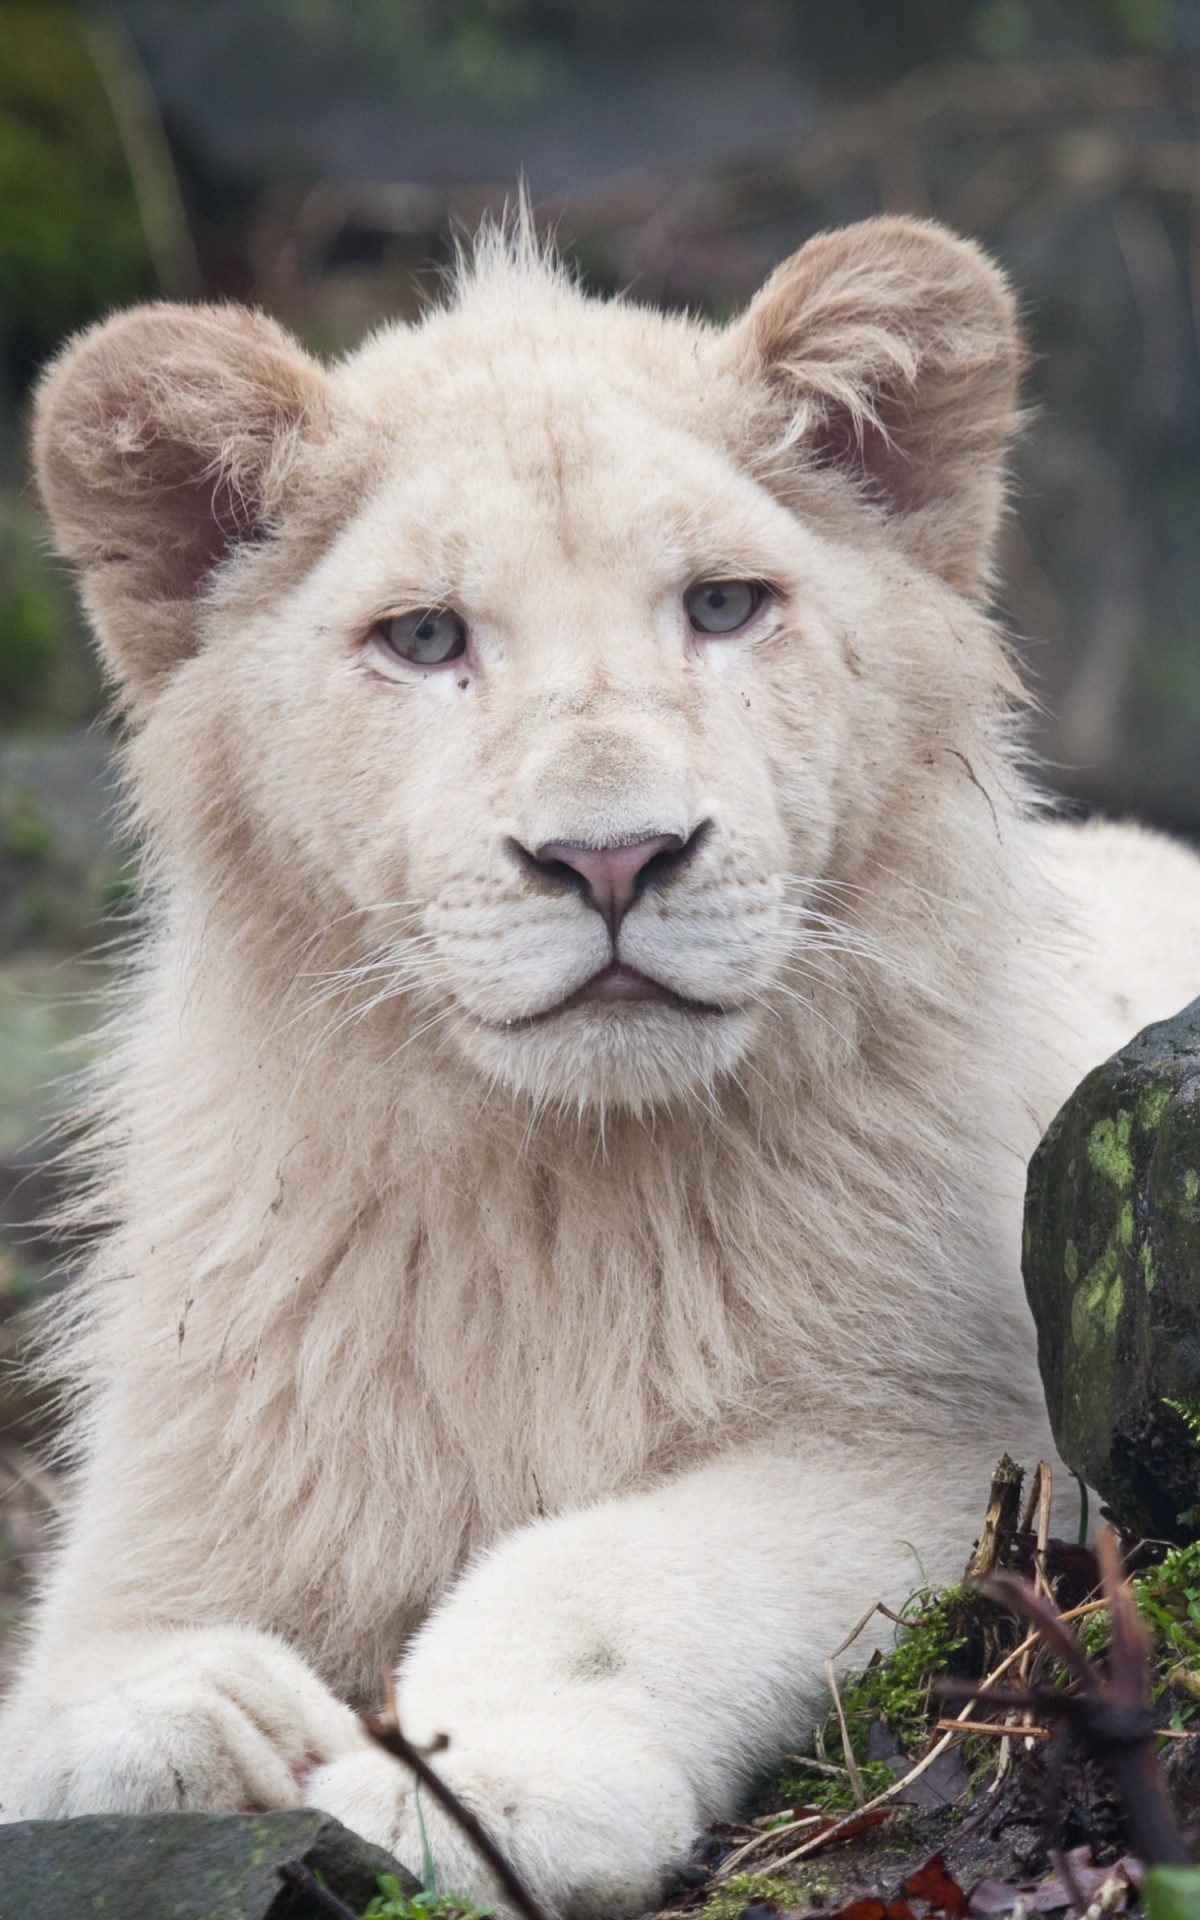 White Lions Wallpaper for Amazon Kindle Fire HDX